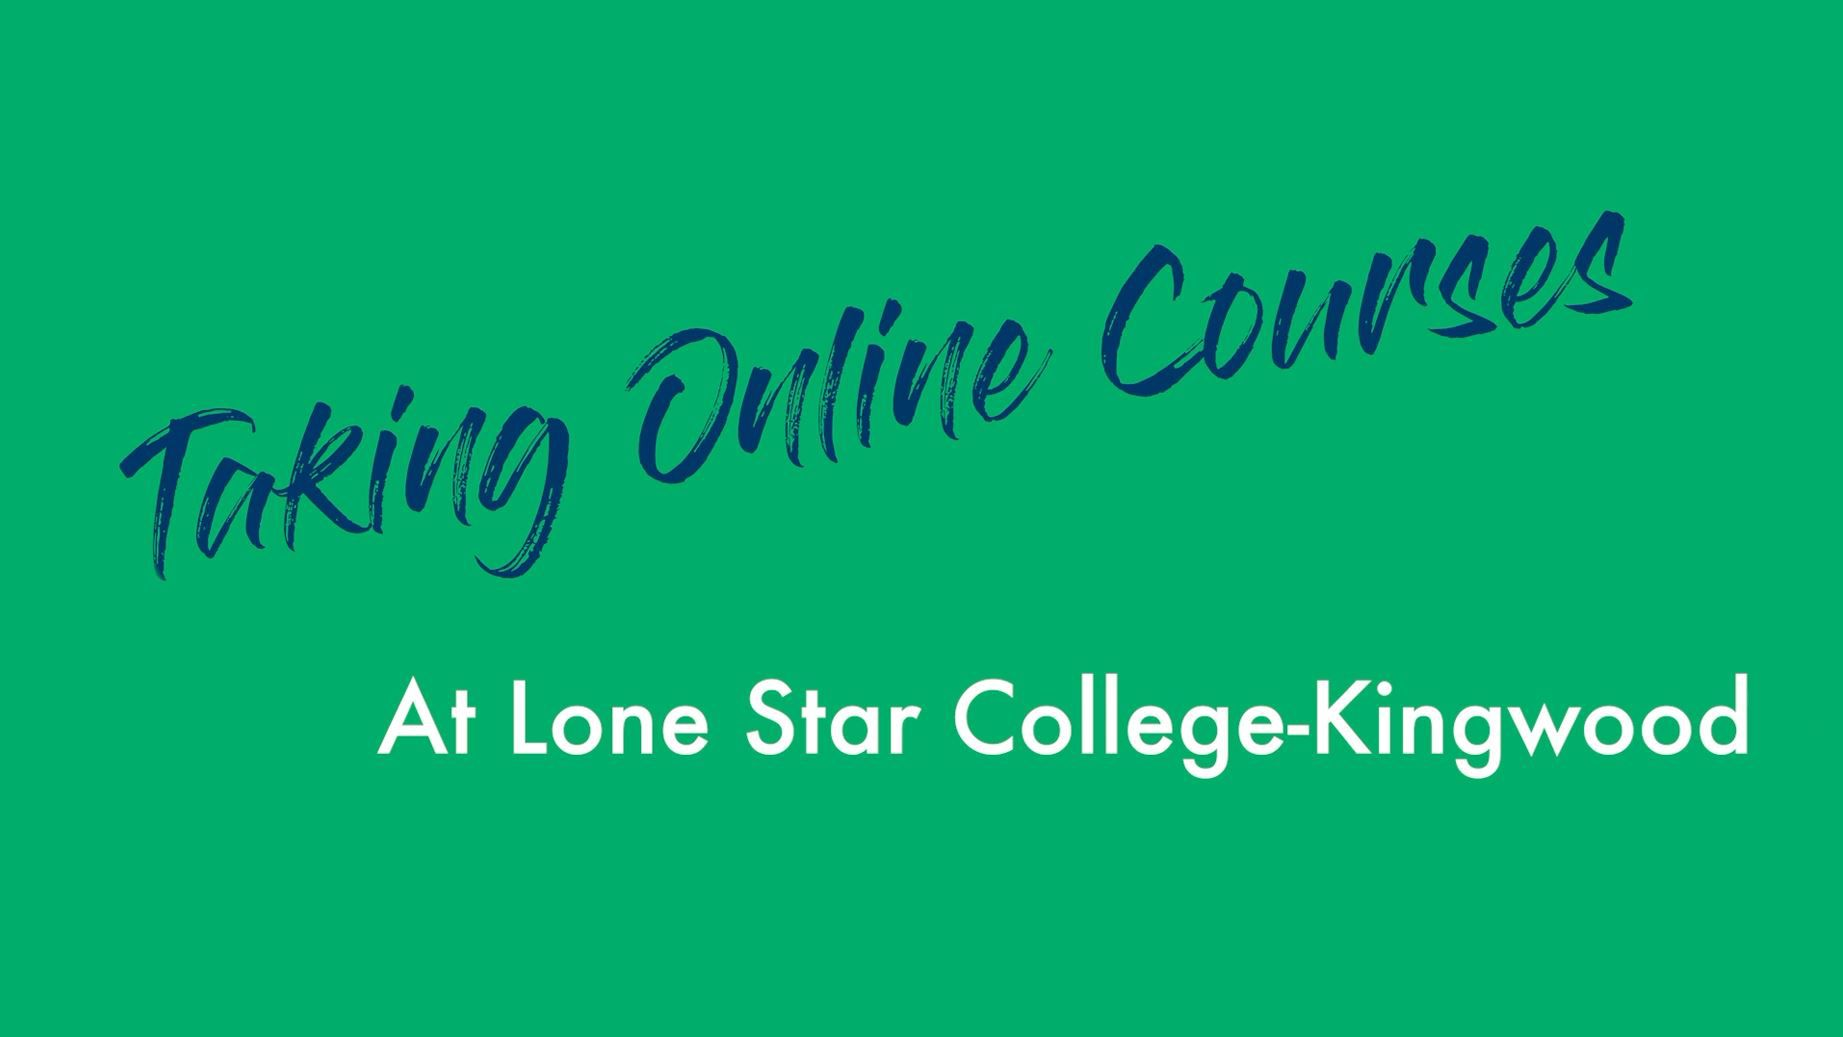 Taking Online Course At Lsc Kingwood Learn How These Students Are Easily Dealing With Their Online Courses At Lsckingwood Do Online Courses Kingwood Online